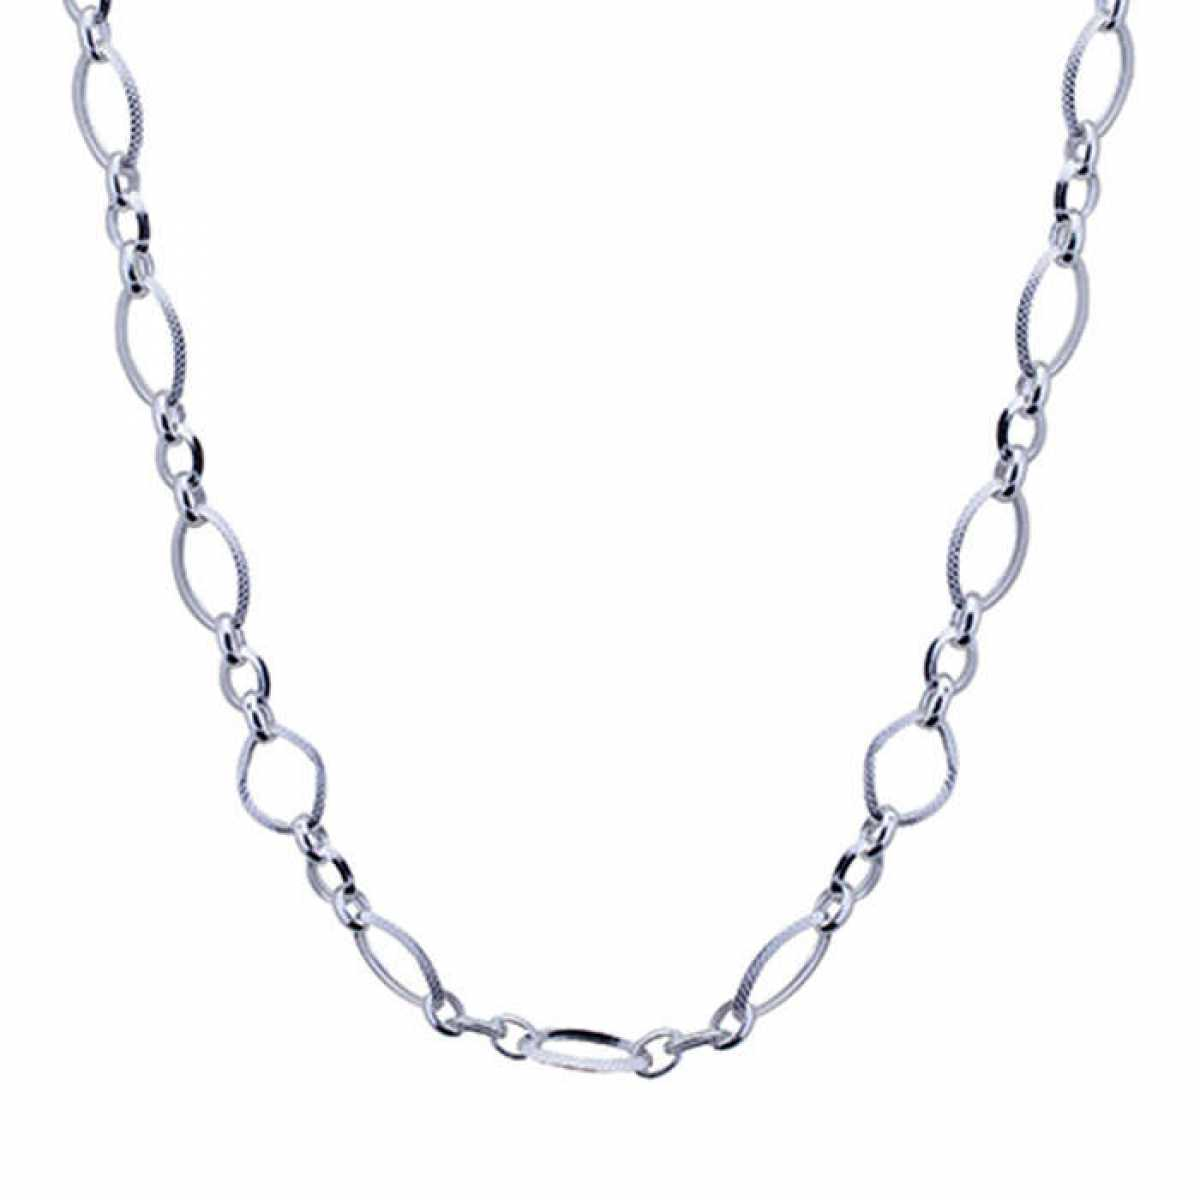 Solid Sterling Silver Chain for Men